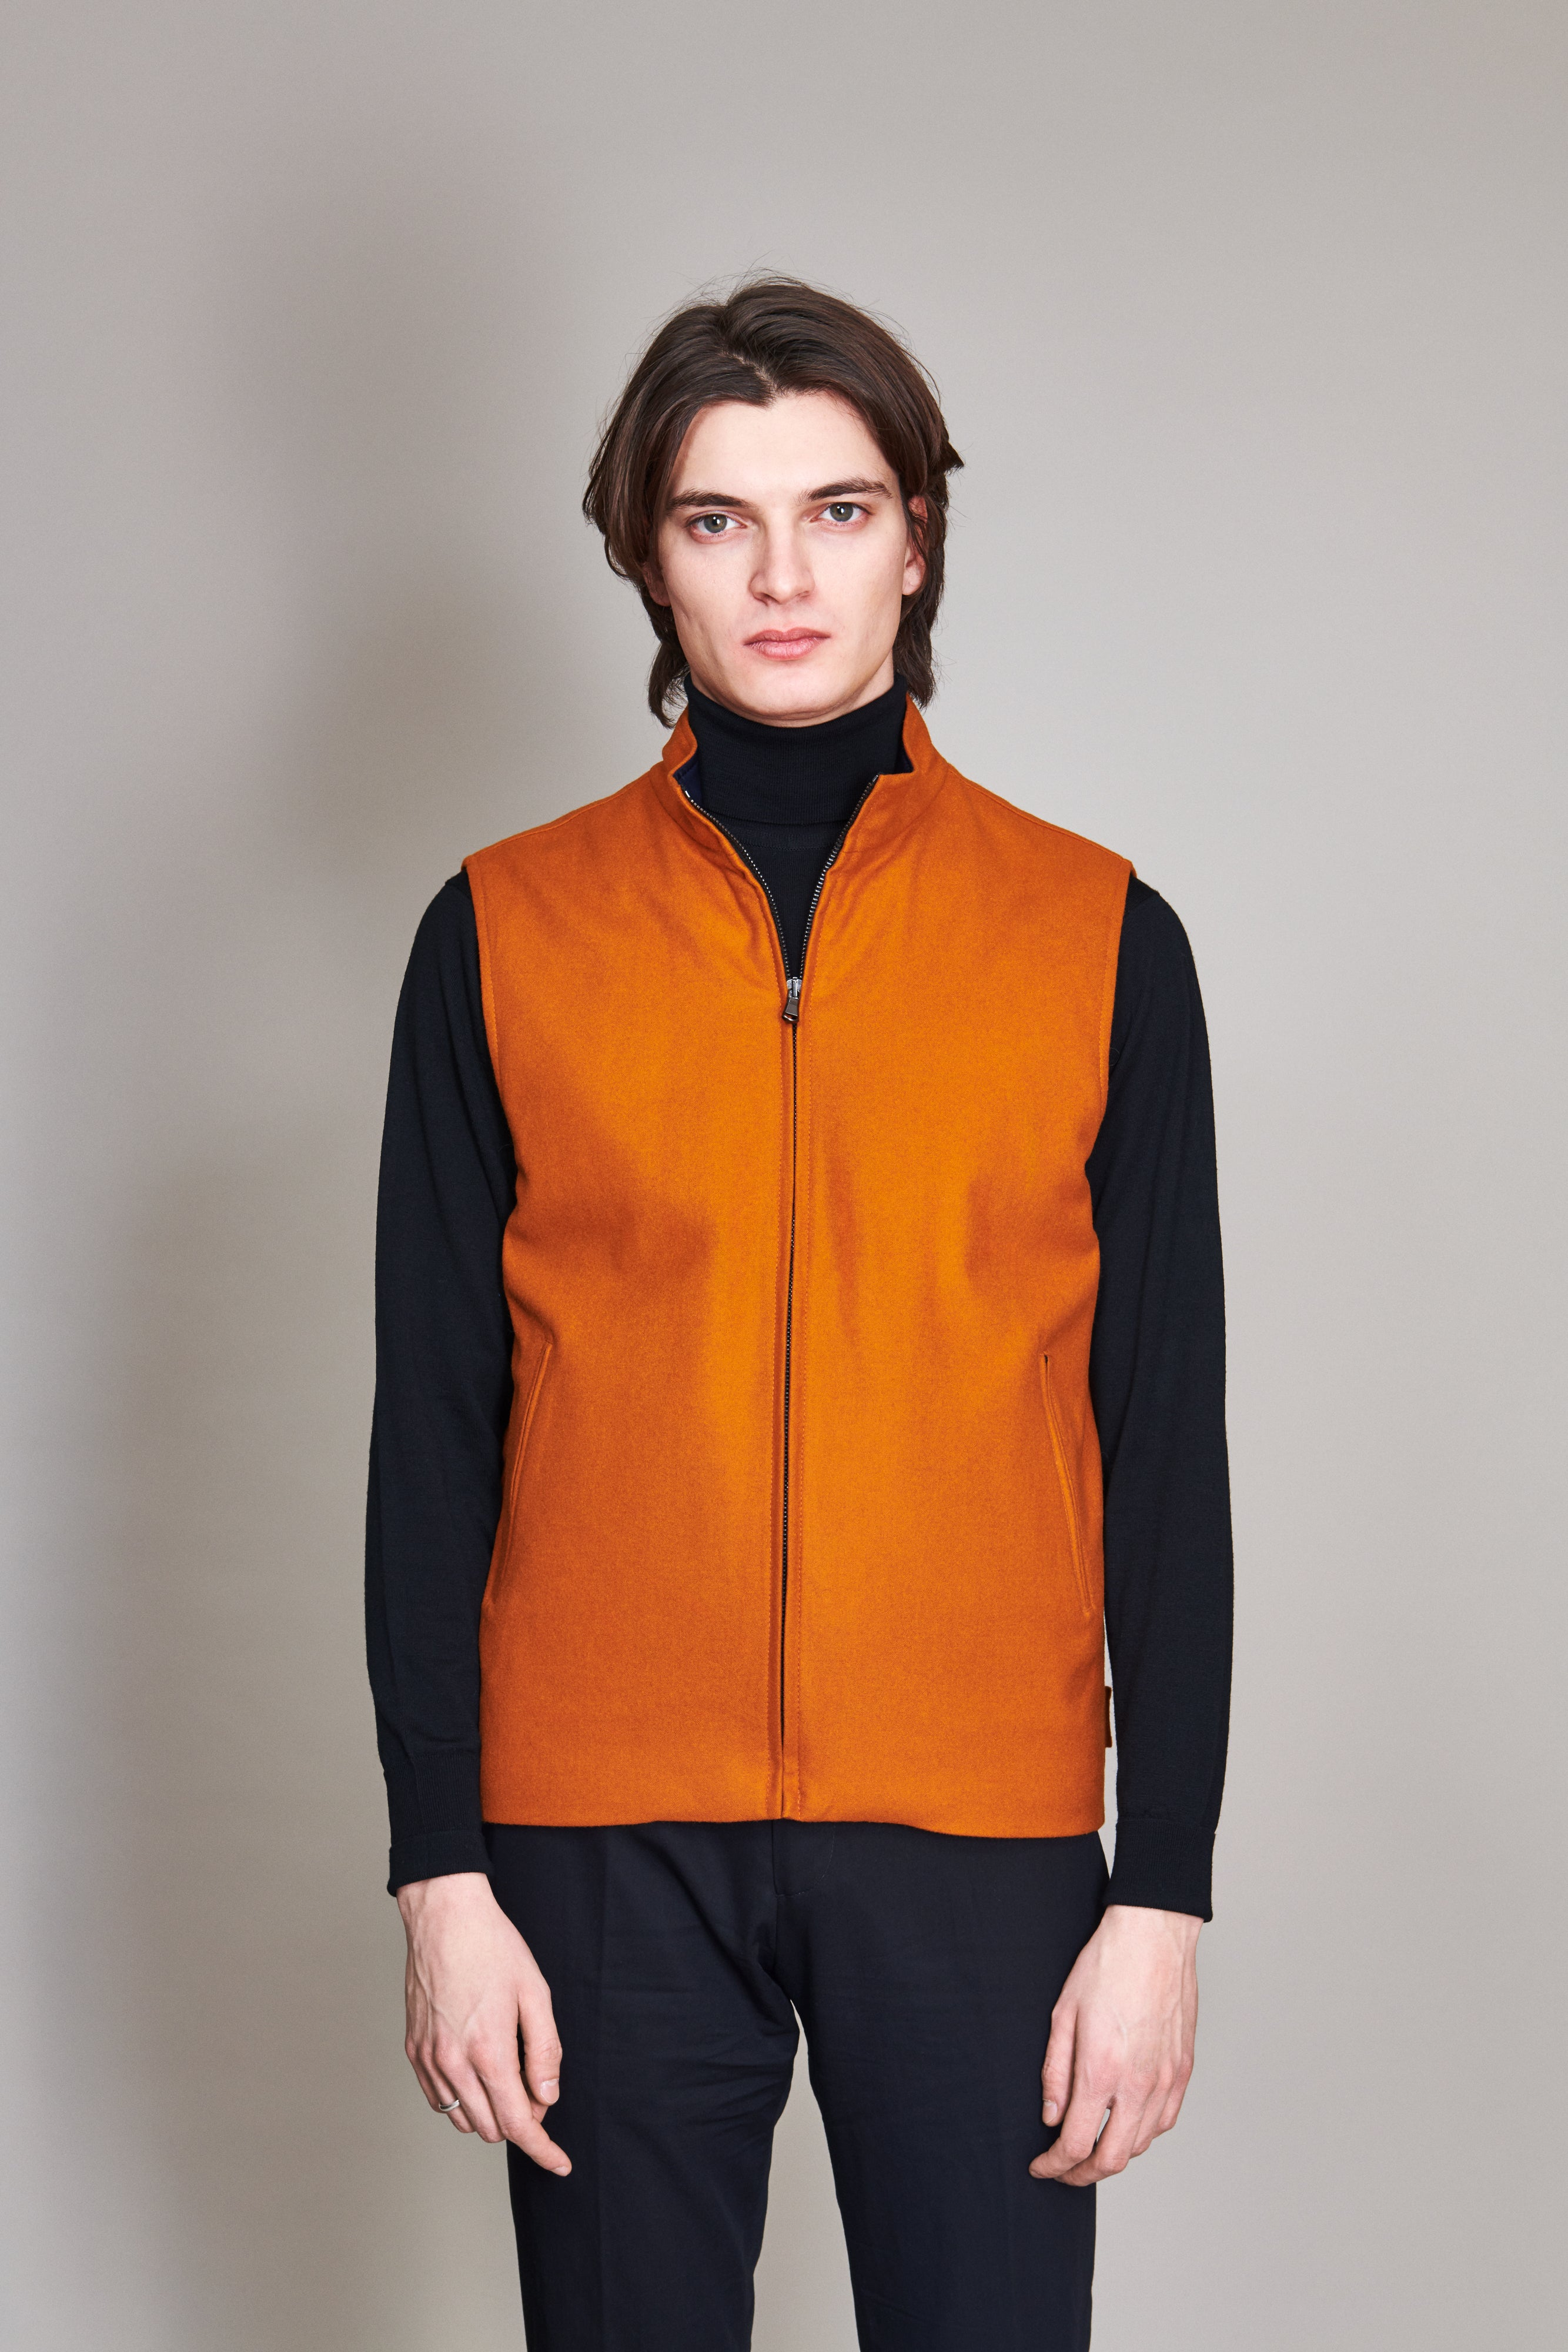 Extra fine Merino wool vest reversible in nylon.